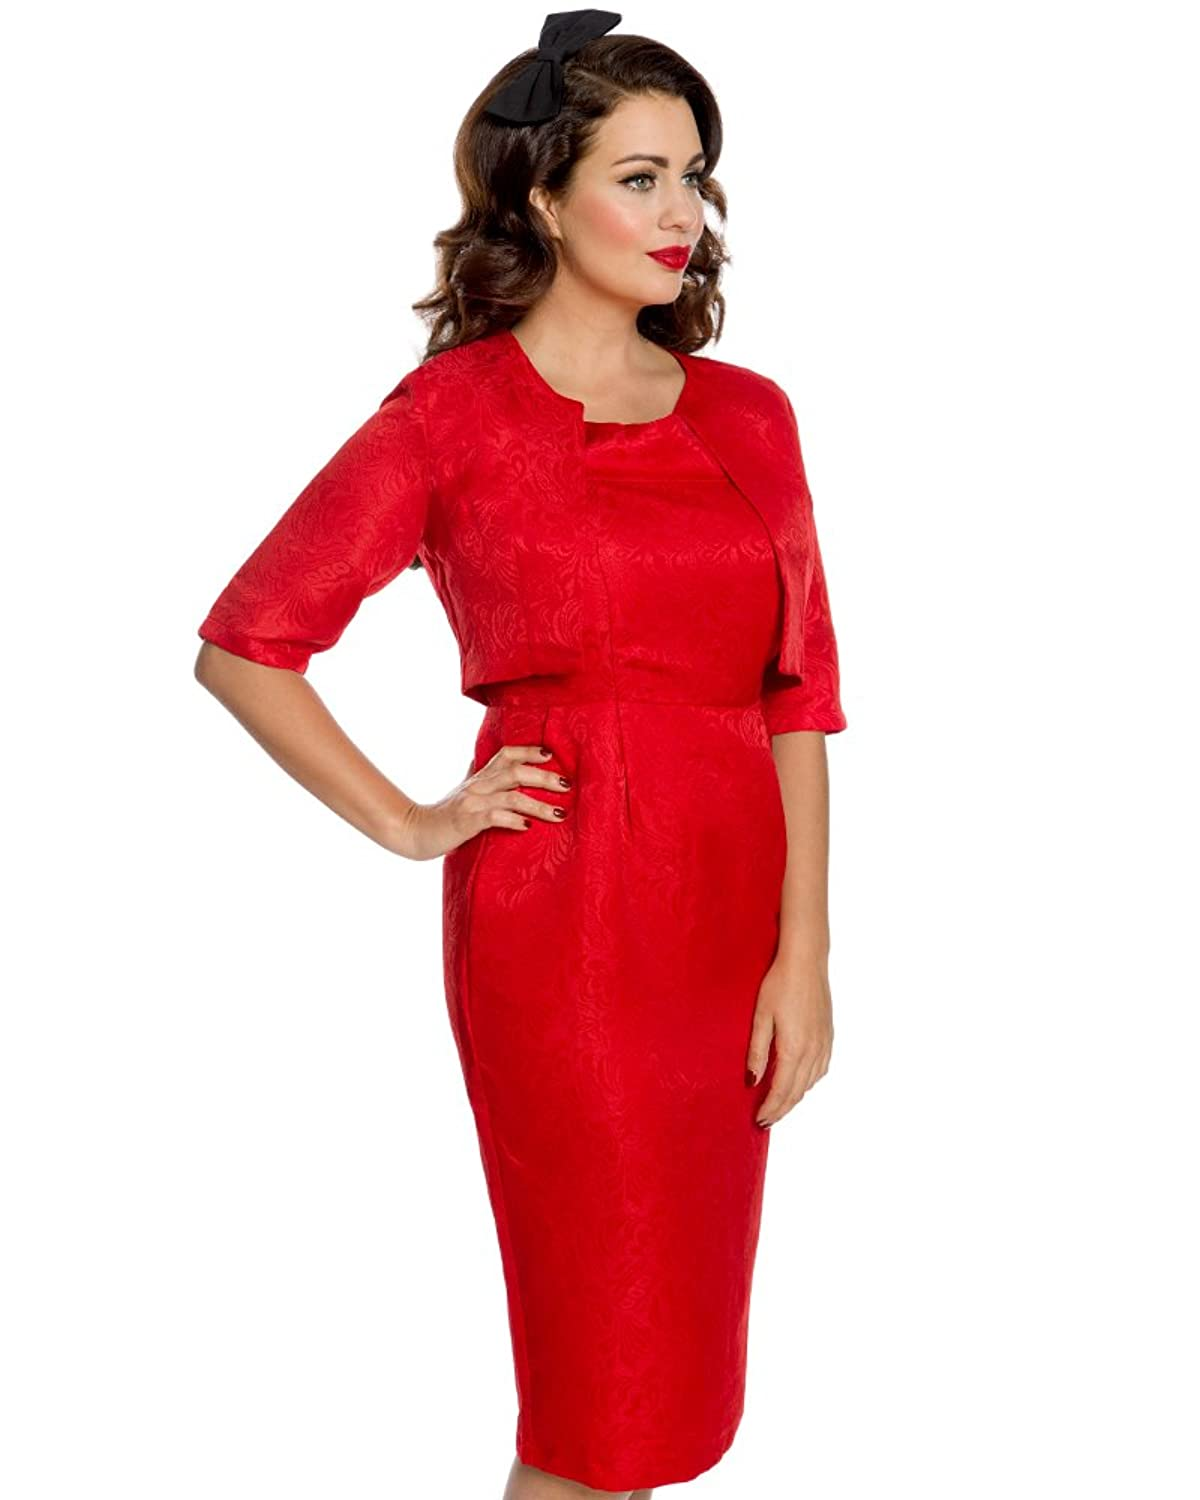 Pin Up Dresses | Pinup Clothing & Fashion Lindy Bop Amanda Cranberry Pencil Dress and Jacket Twin Set $85.00 AT vintagedancer.com